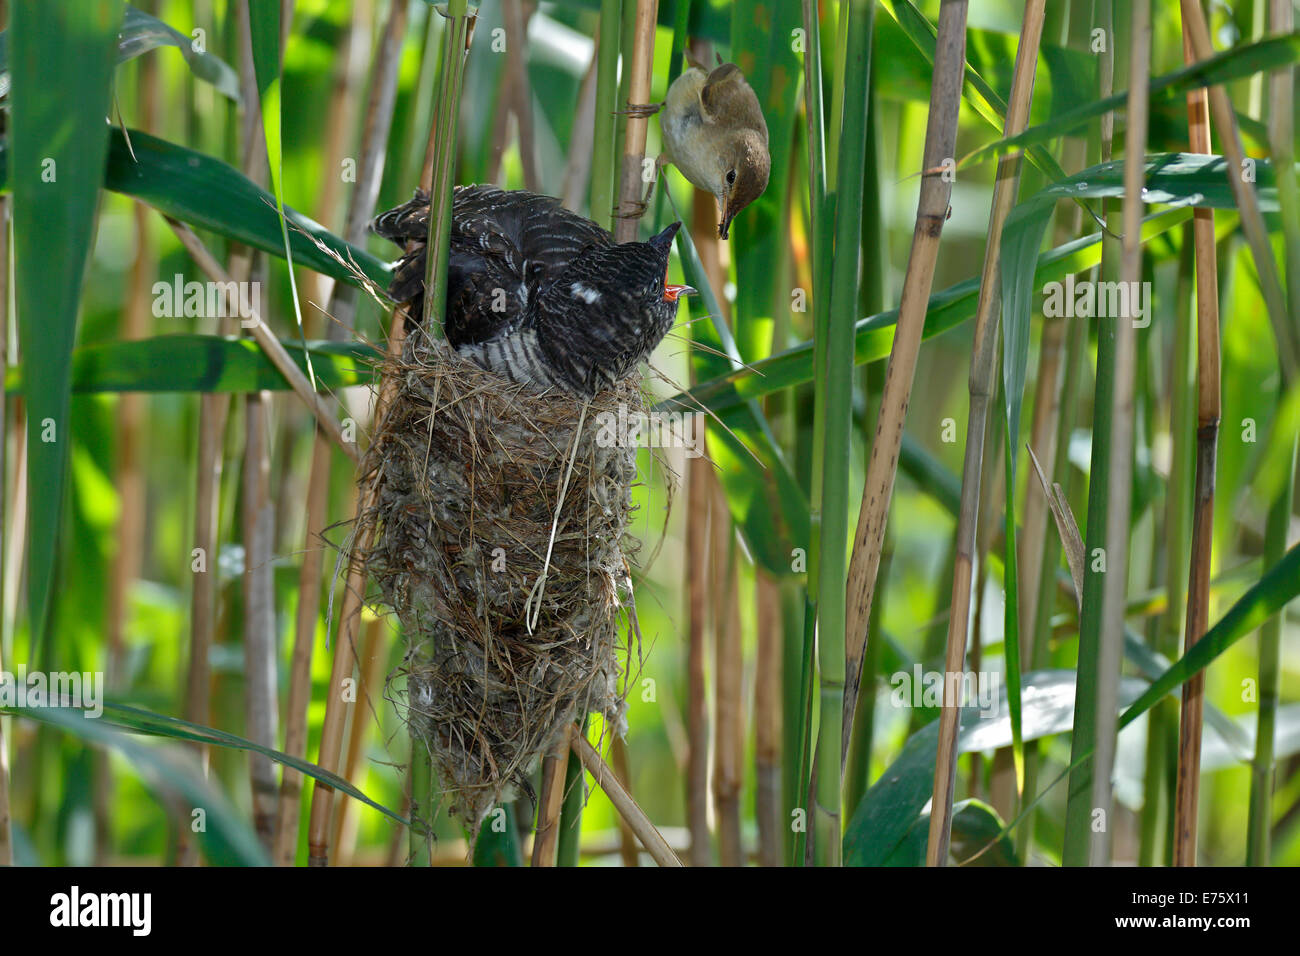 A young Common Cuckoo (Cuculus canorus) is fed by its host, a Eurasian Reed Warbler (Acrocephalus scirpaceus), Saxony - Stock Image